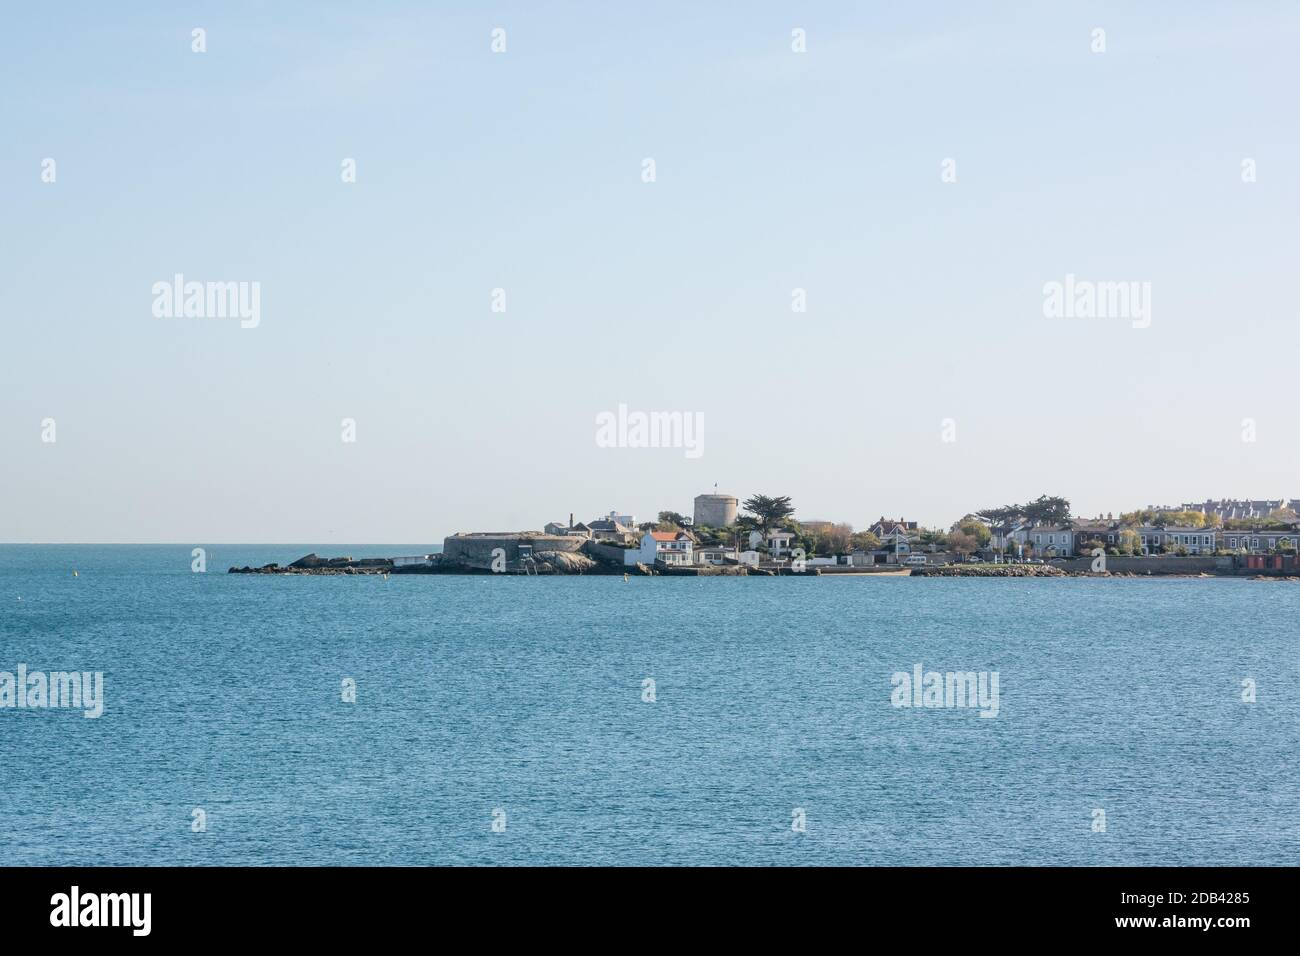 View of Sandycove, the Forty Foot and the Joyce Tower from the East Pier at Dun Laoghaire in County Dublin, Ireland Stock Photo